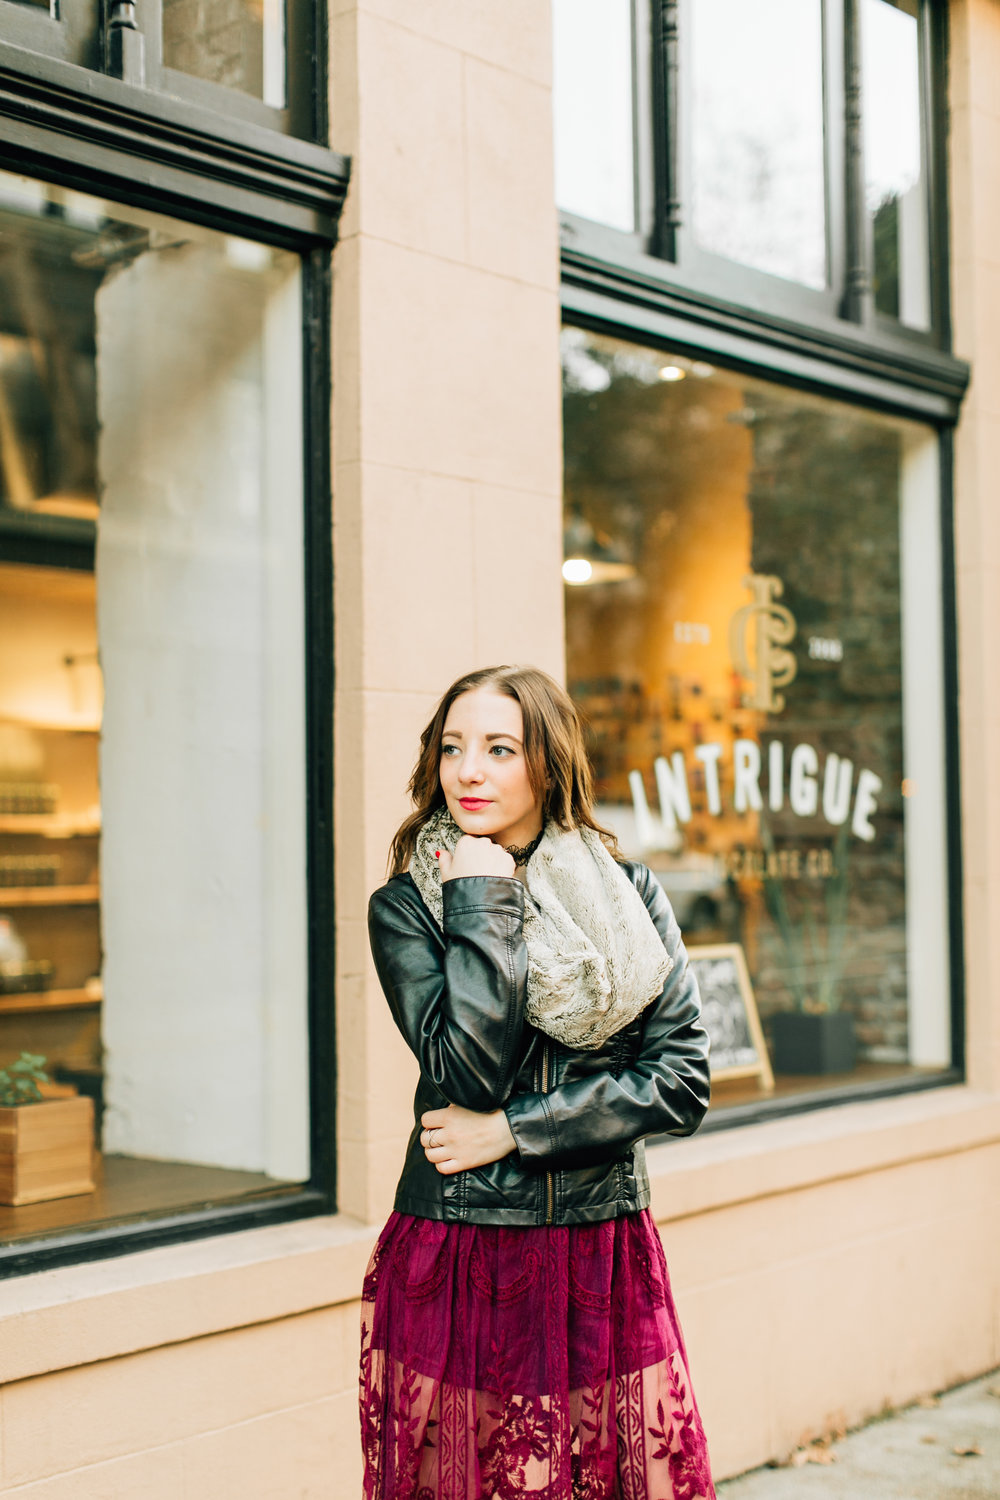 SeattleFashionPhotographer-46.jpg